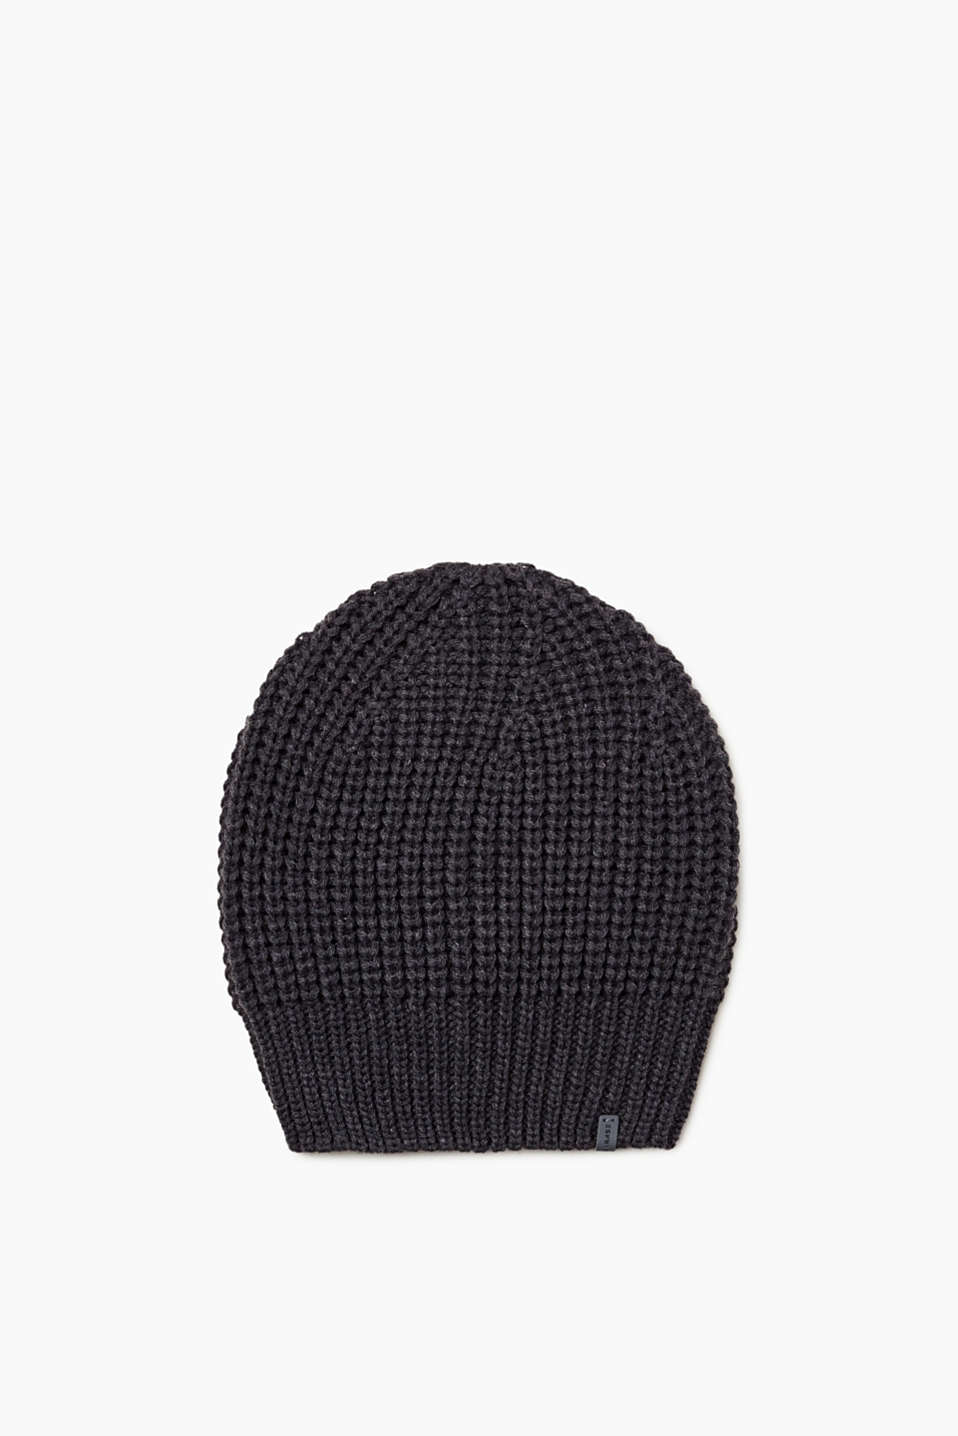 We love knitwear! This beanie featuring a classic knit pattern is no exception.